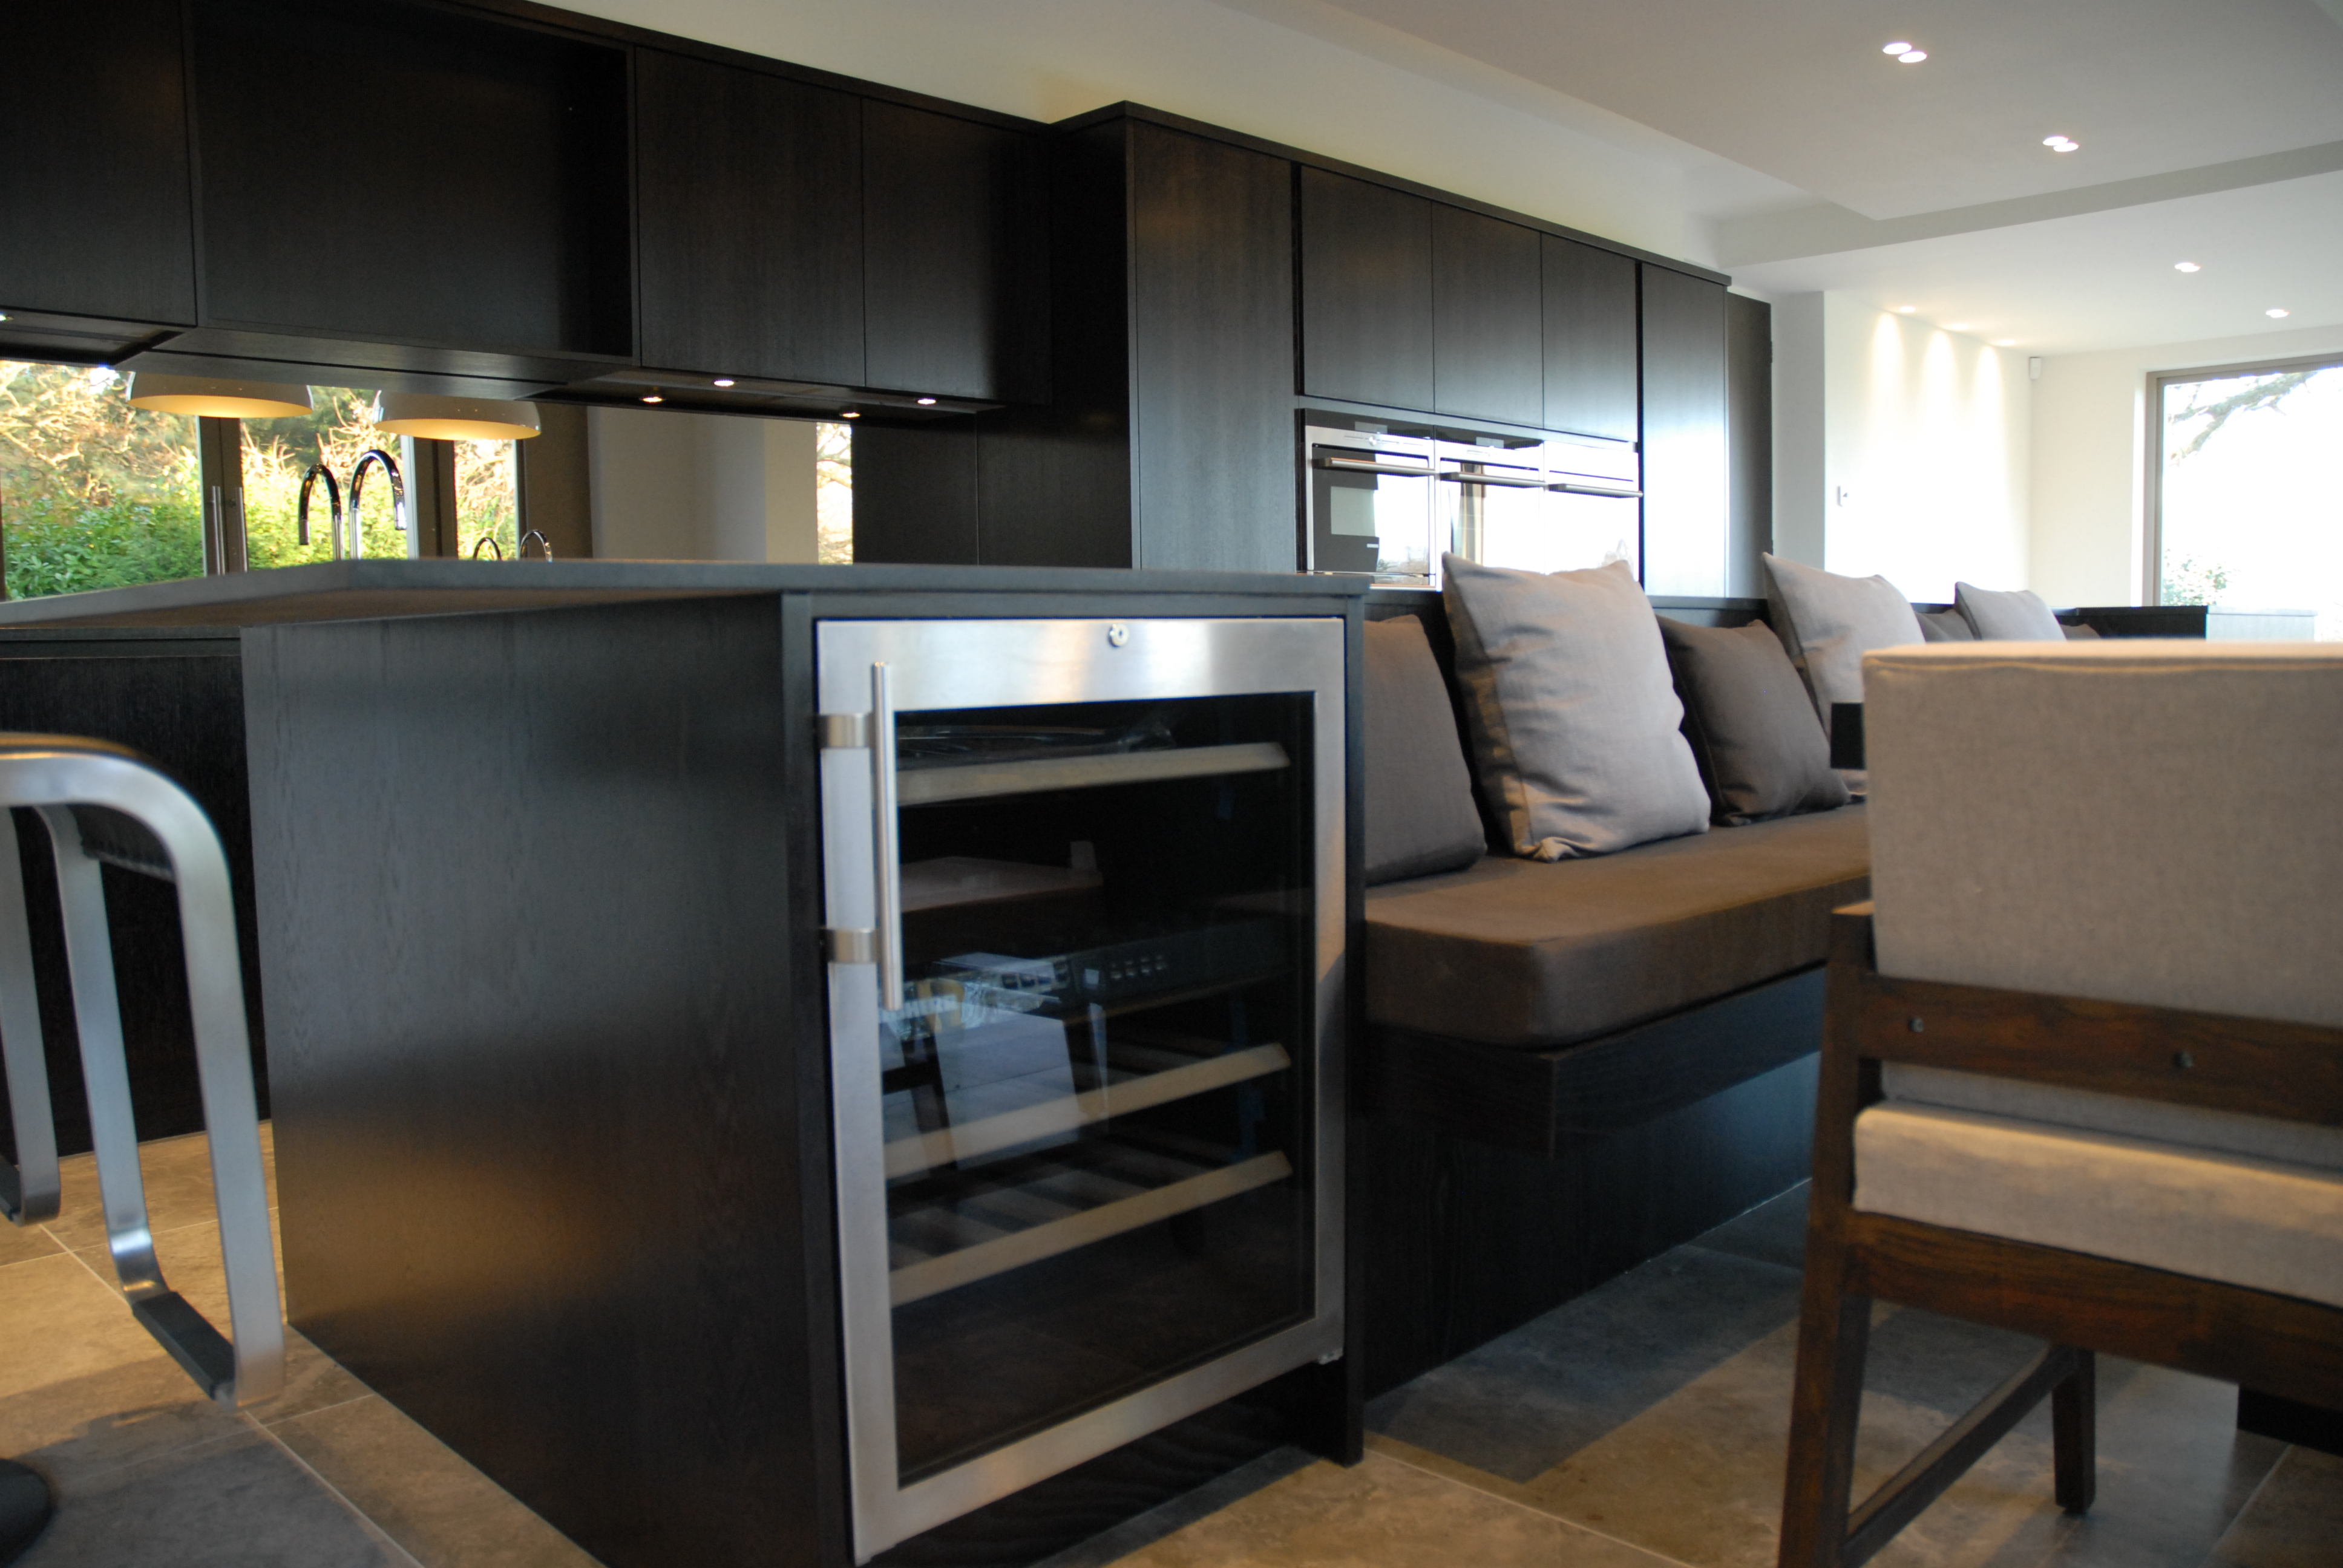 Milano Kitchens Hale Barns By Acanthus Design